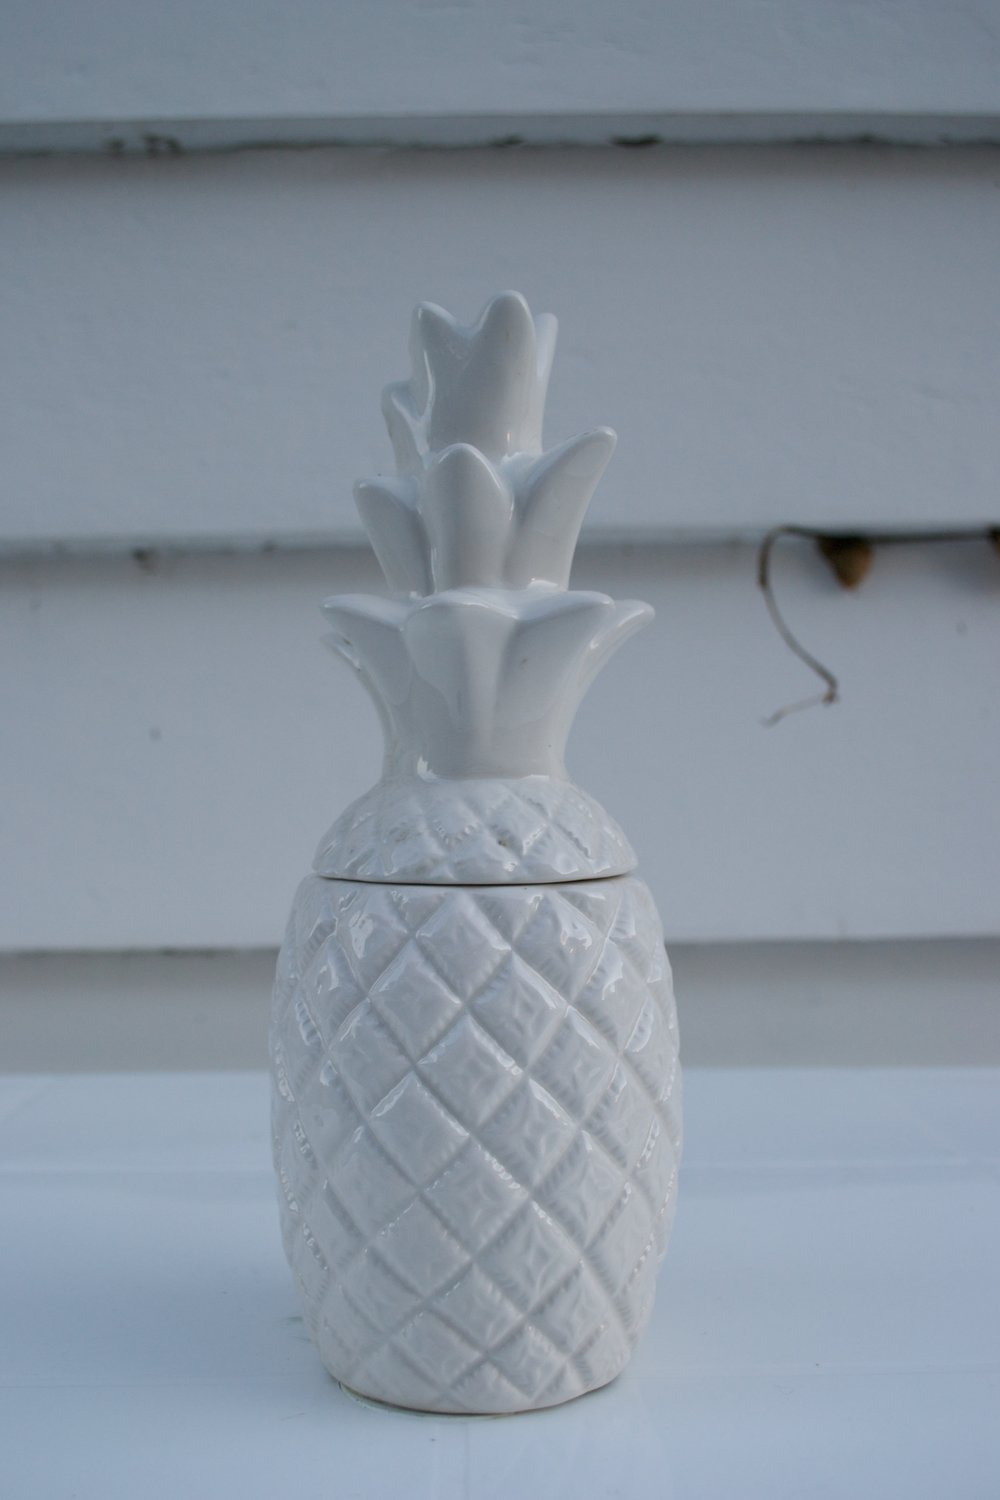 pineapple holder x1 $5